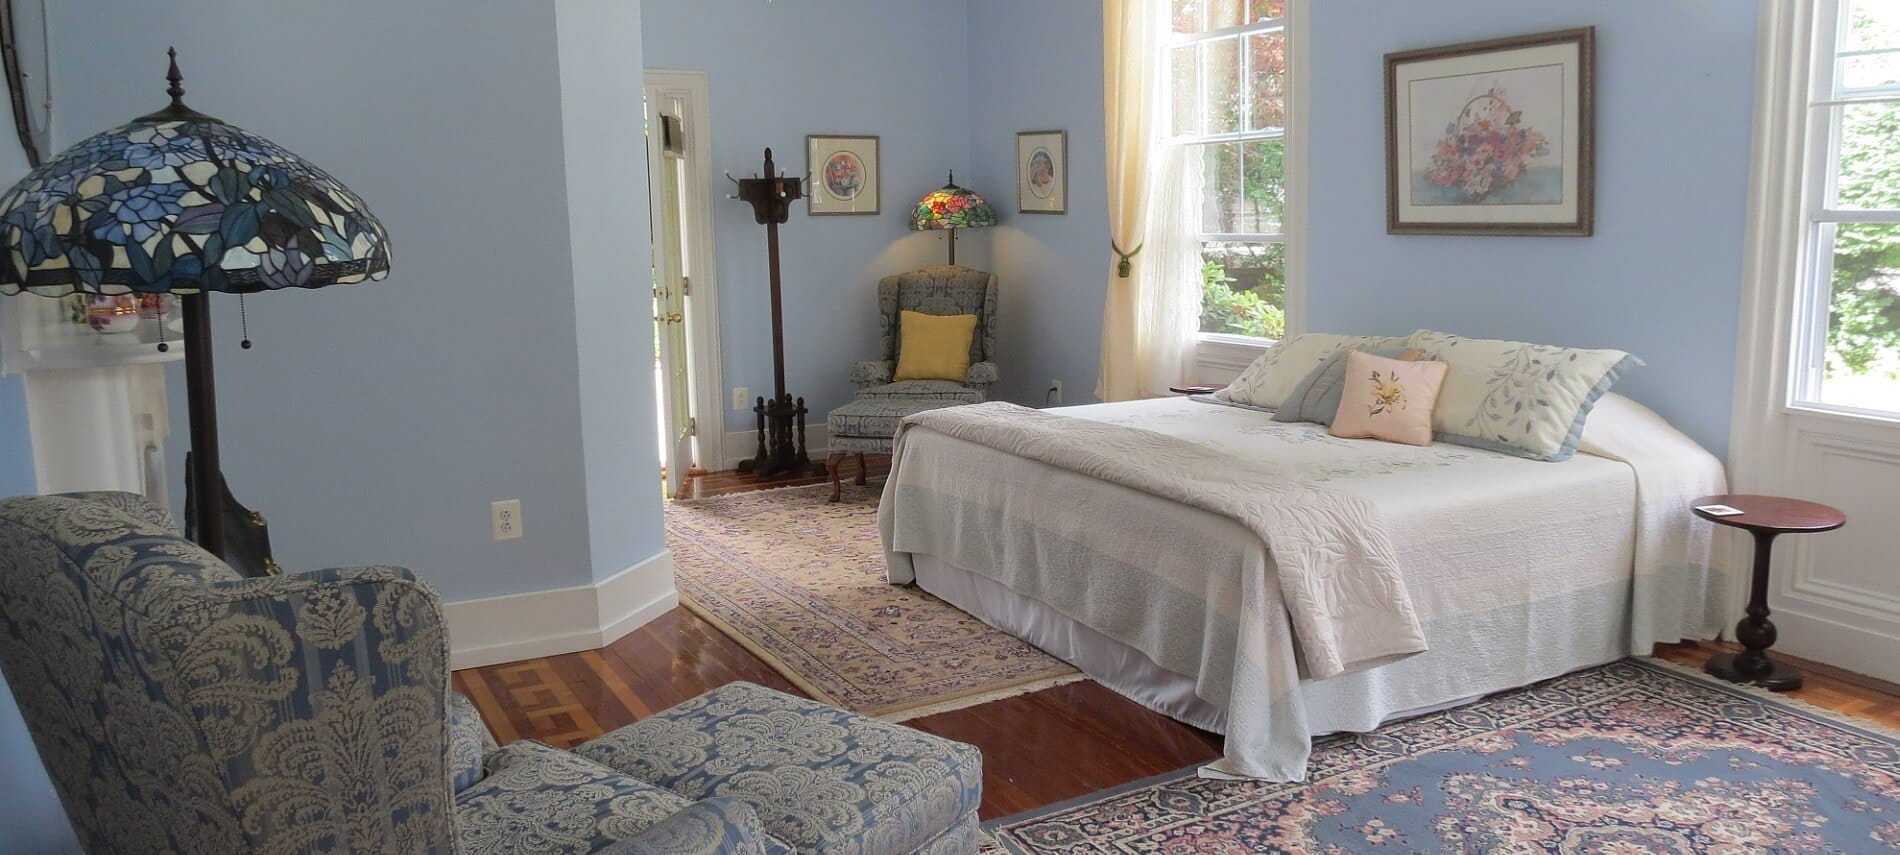 Bedroom decorated in calming blue and white with a queen bed, large windows and chair with ottoman.